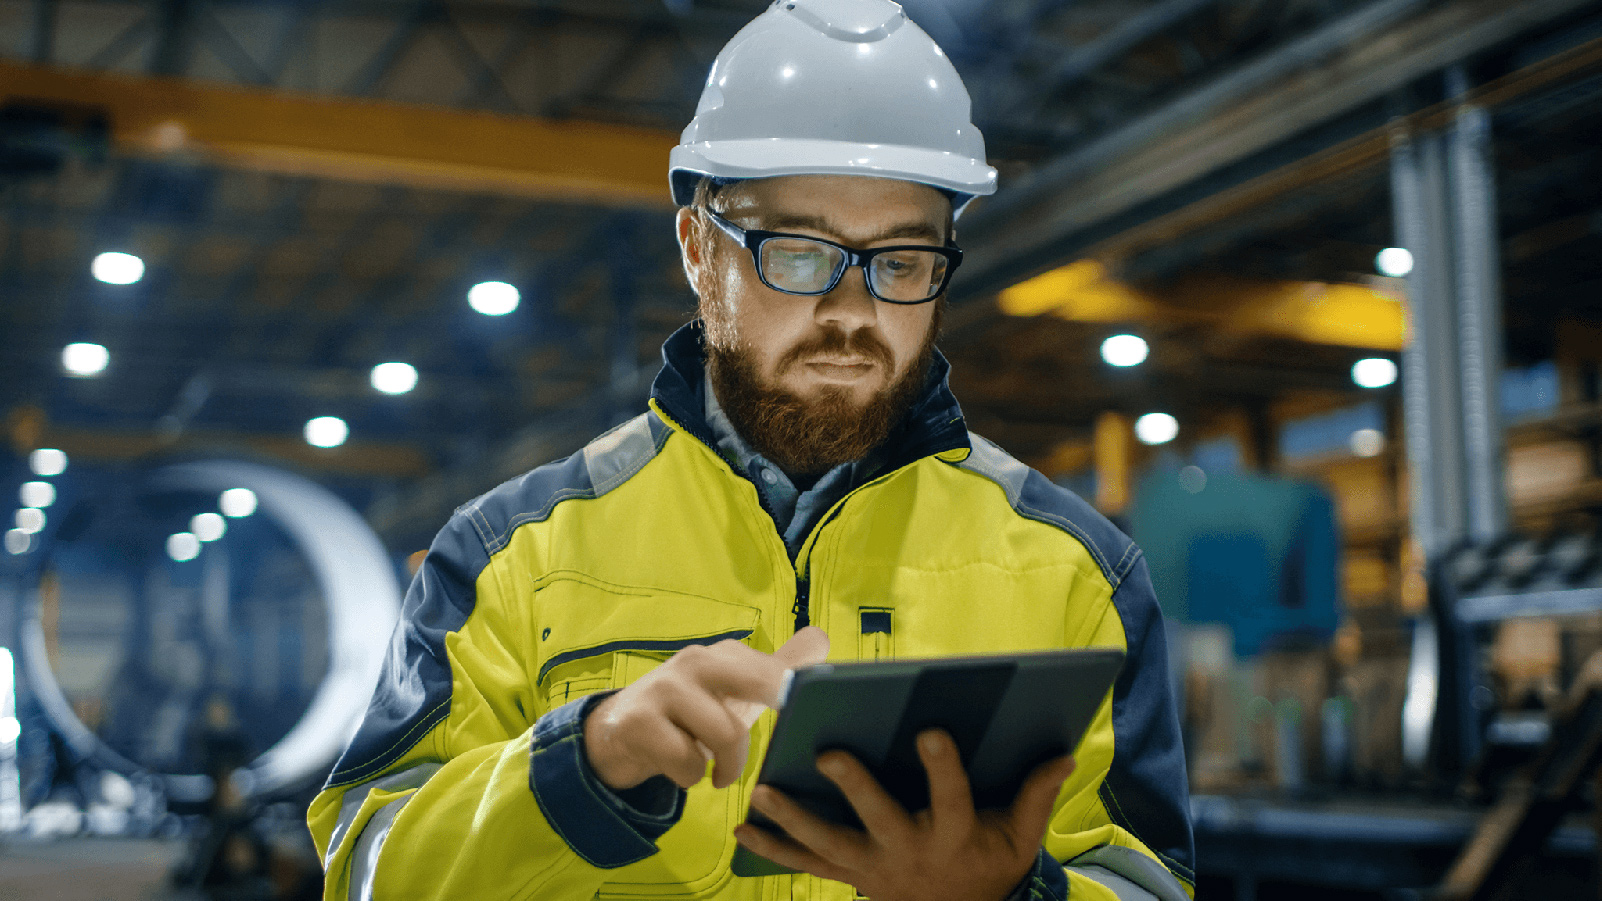 Man in a warehouse facility wearing a hard hat looking at a tablet.